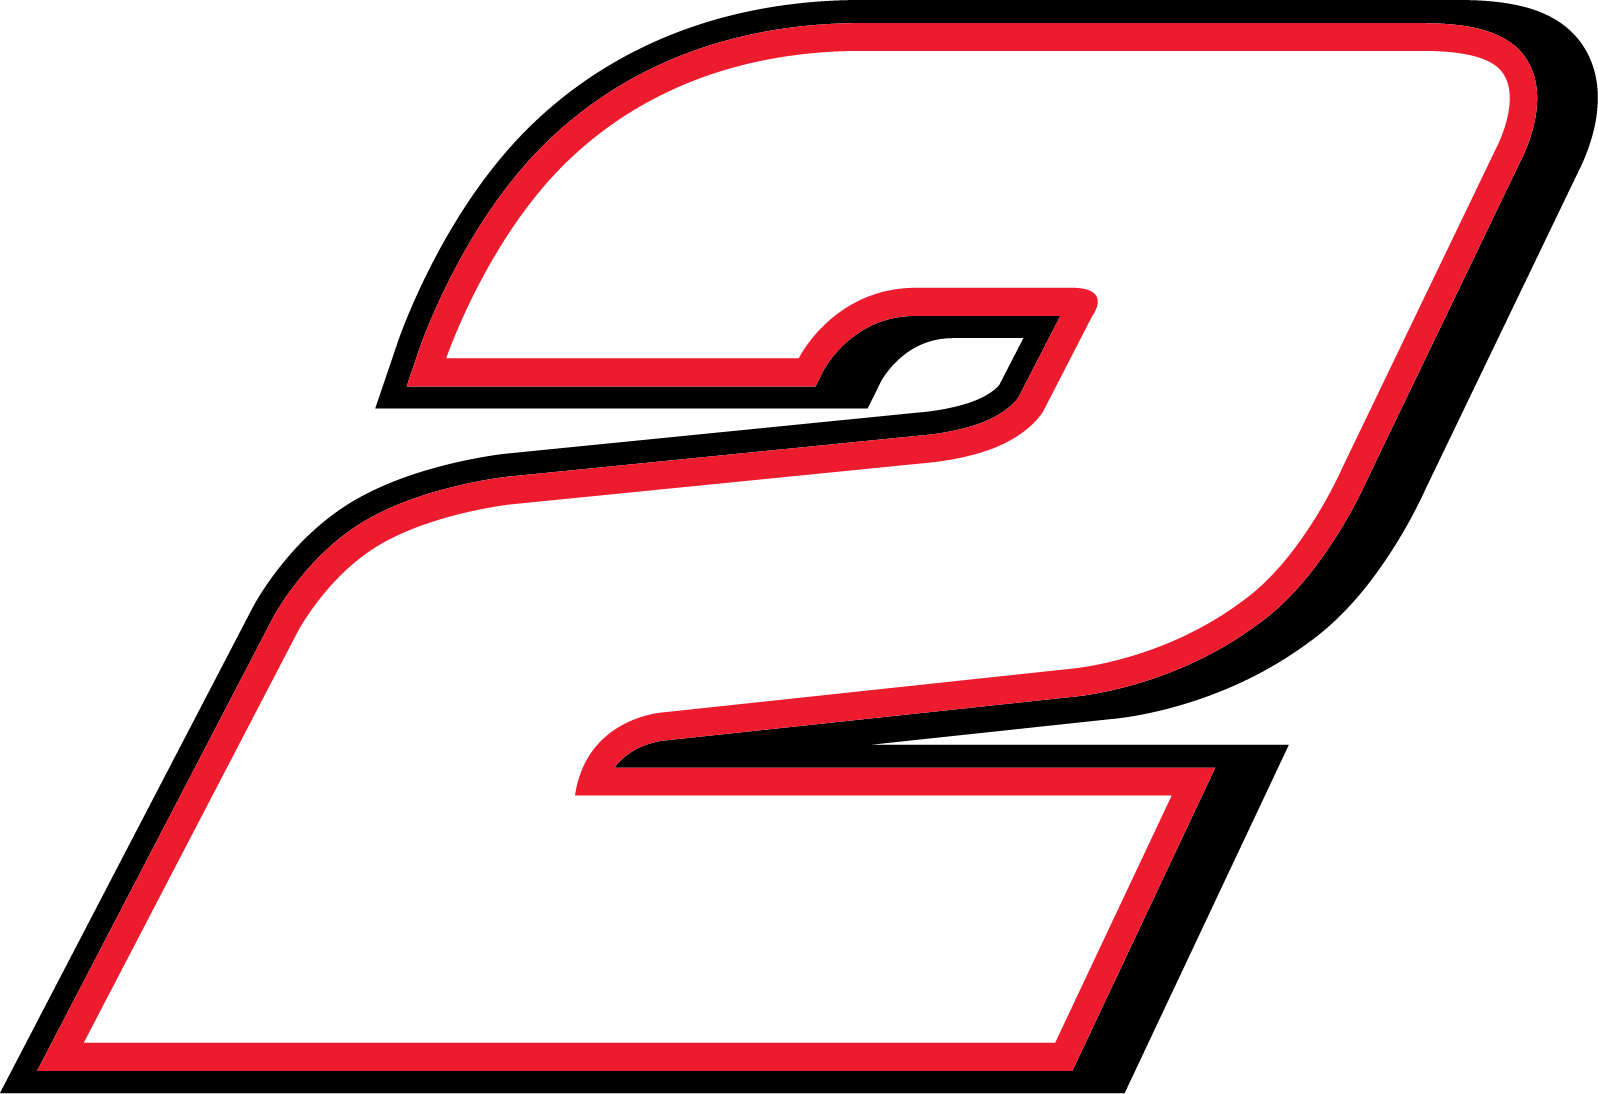 R clipart fonts. Nascar group free download